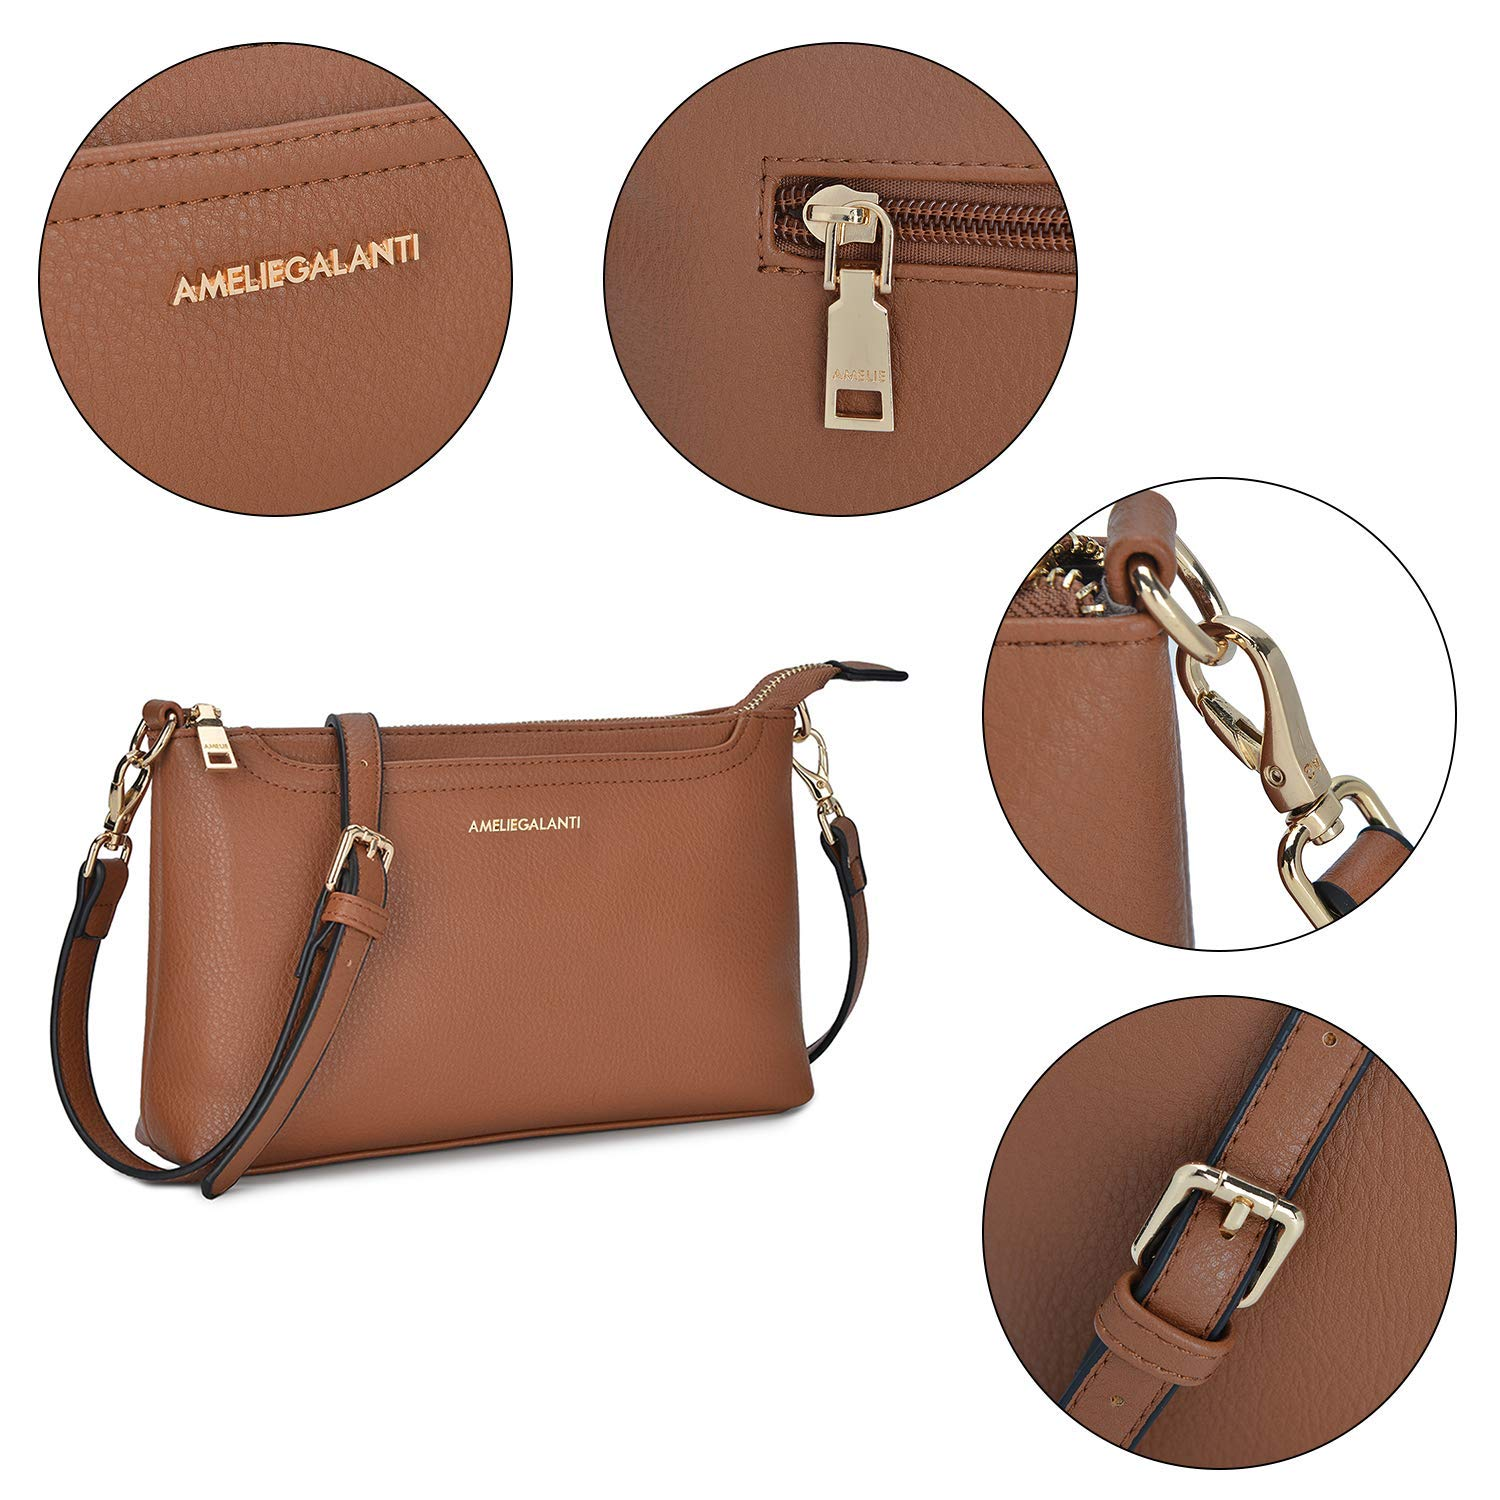 Small Shoulder Bags Zip Crossbody Bags Satchel for Women Purse by AMELIE GALANTI (Image #4)